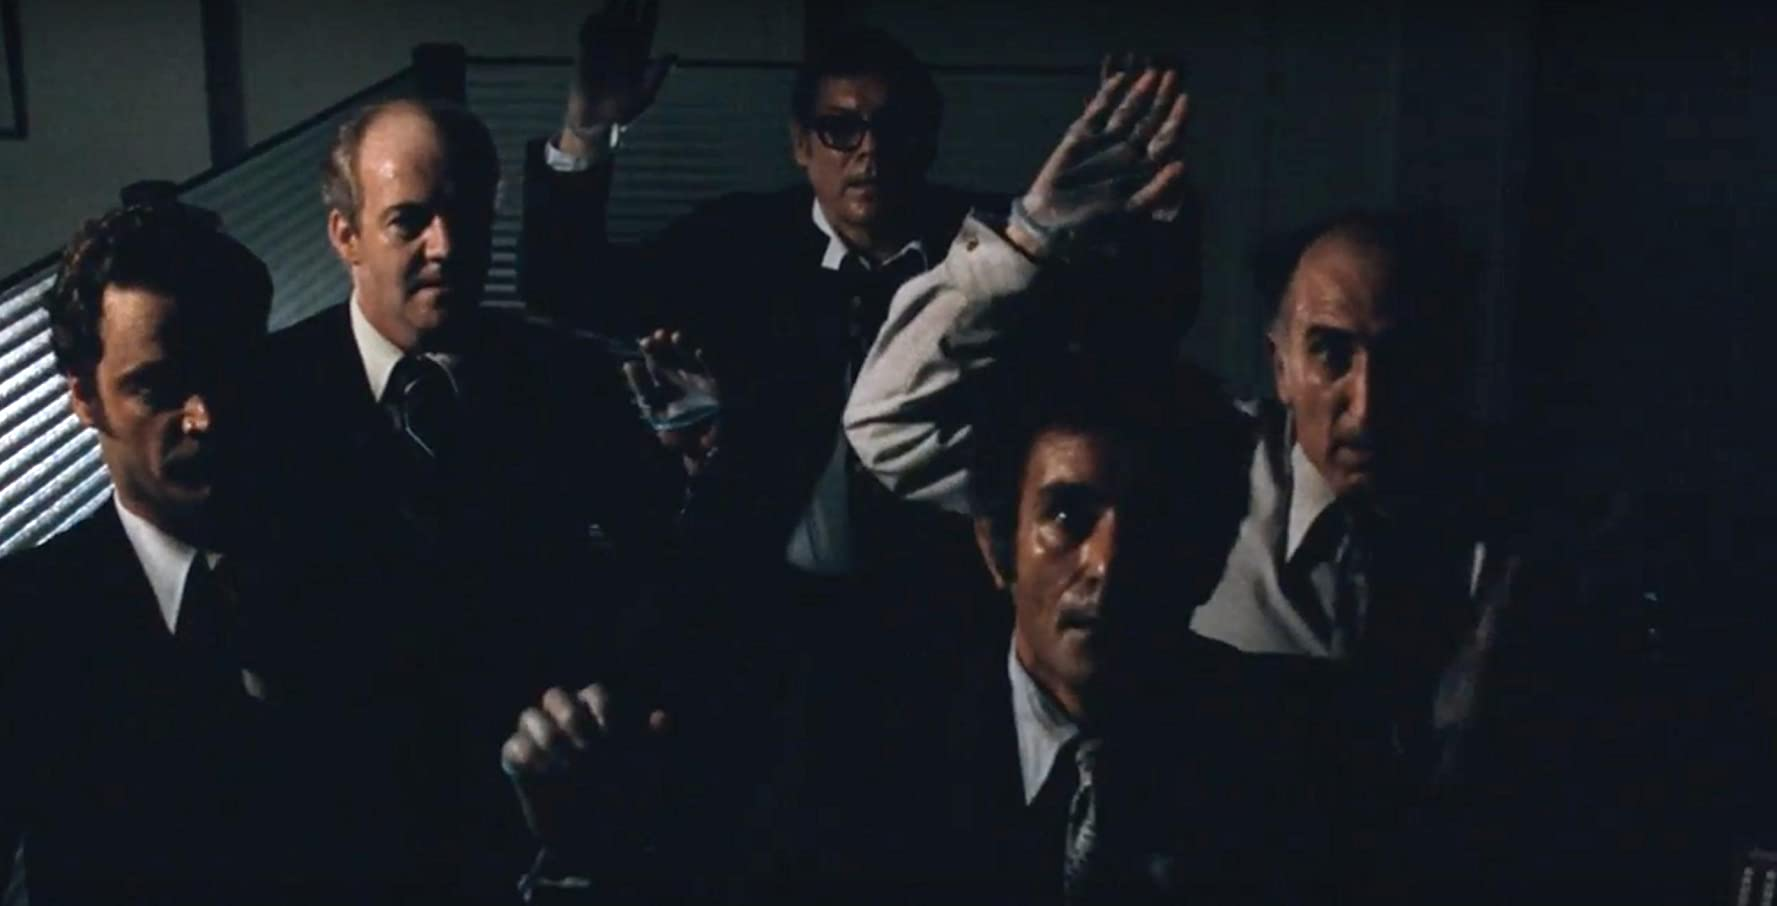 David Arkin, Henry Calvert, Dominic Chianese, Nate Esformes, and Ron Hale in All the President's Men (1976)